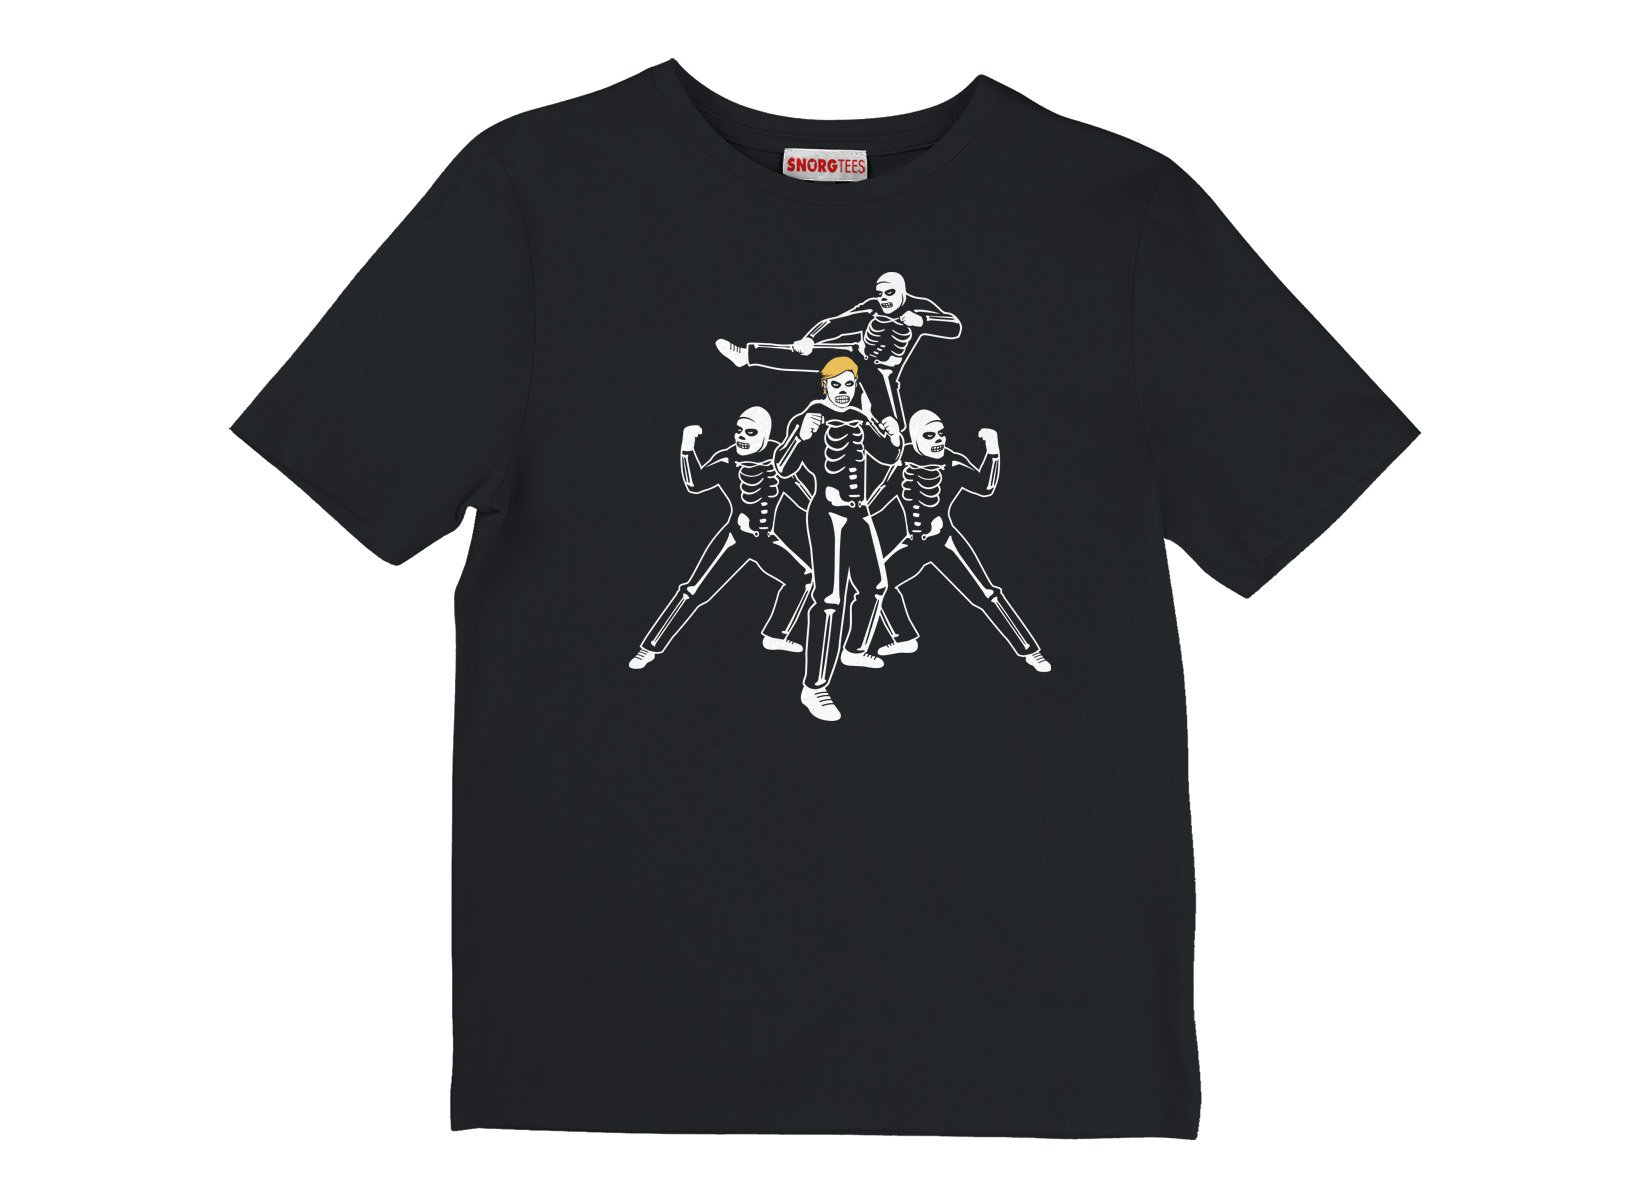 Cobra Kai on Kids T-Shirt